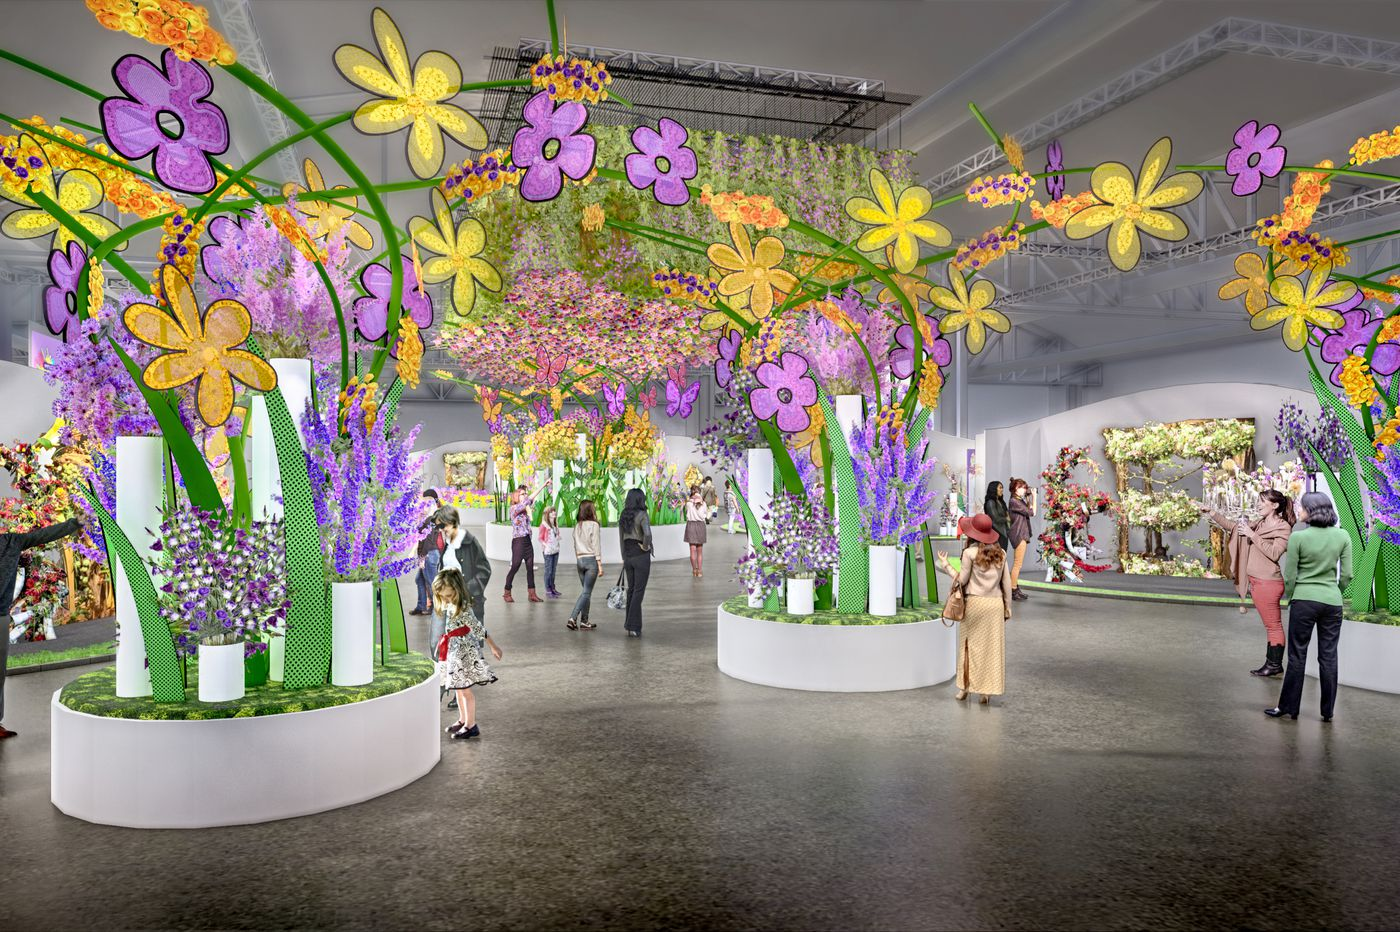 The Philadelphia Flower Show will host the Interflora World Cup in 2019, pitting floral designers against each other